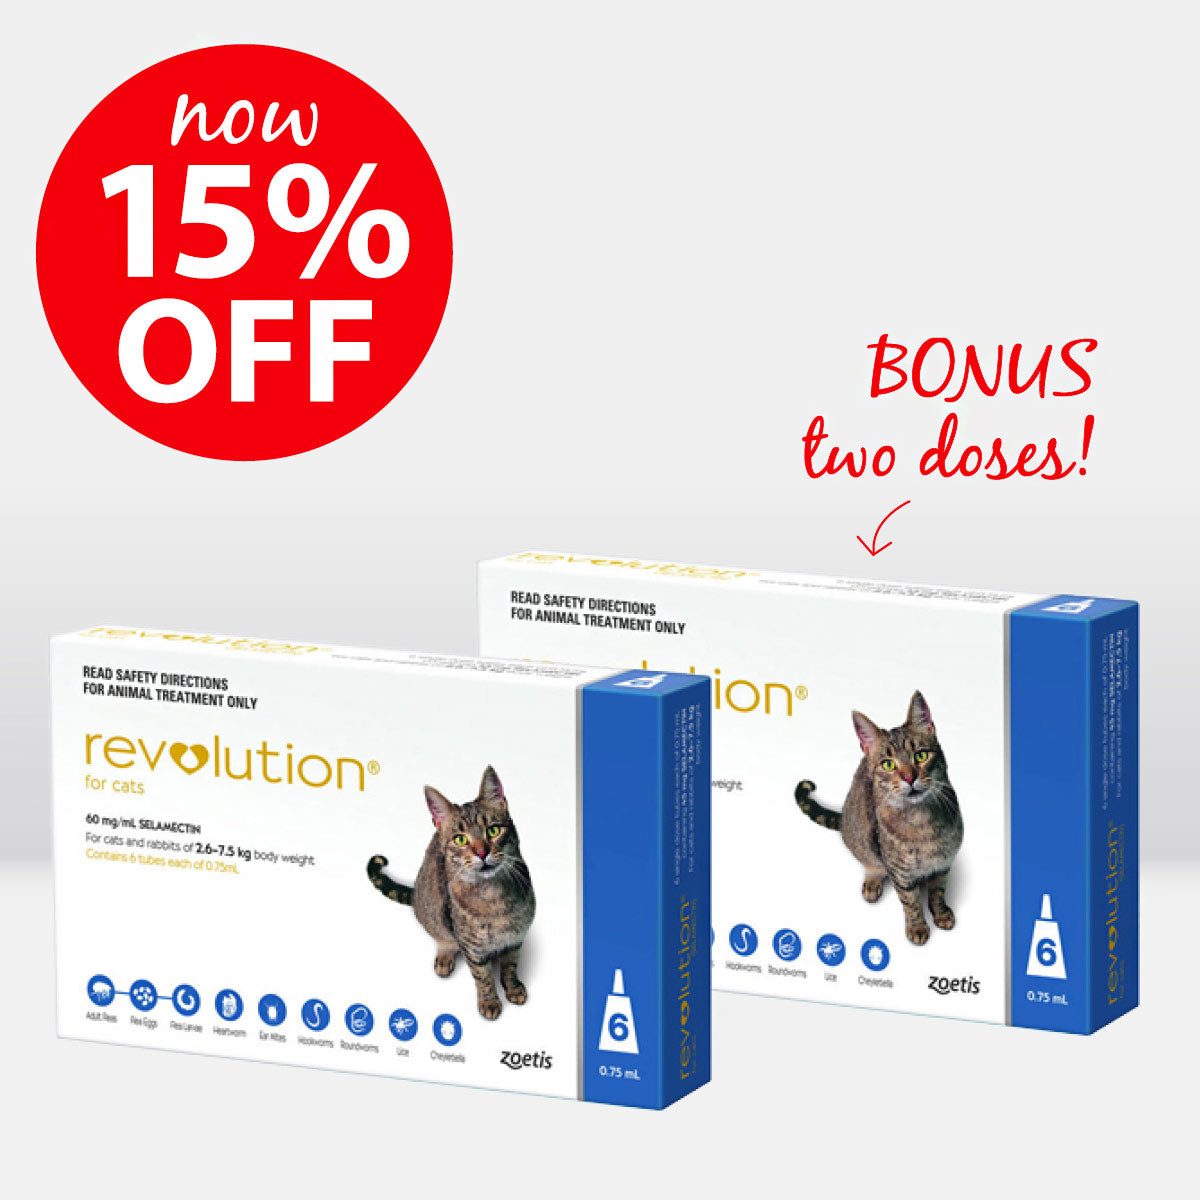 REVOLUTION for Cats 6 packs ON SALE